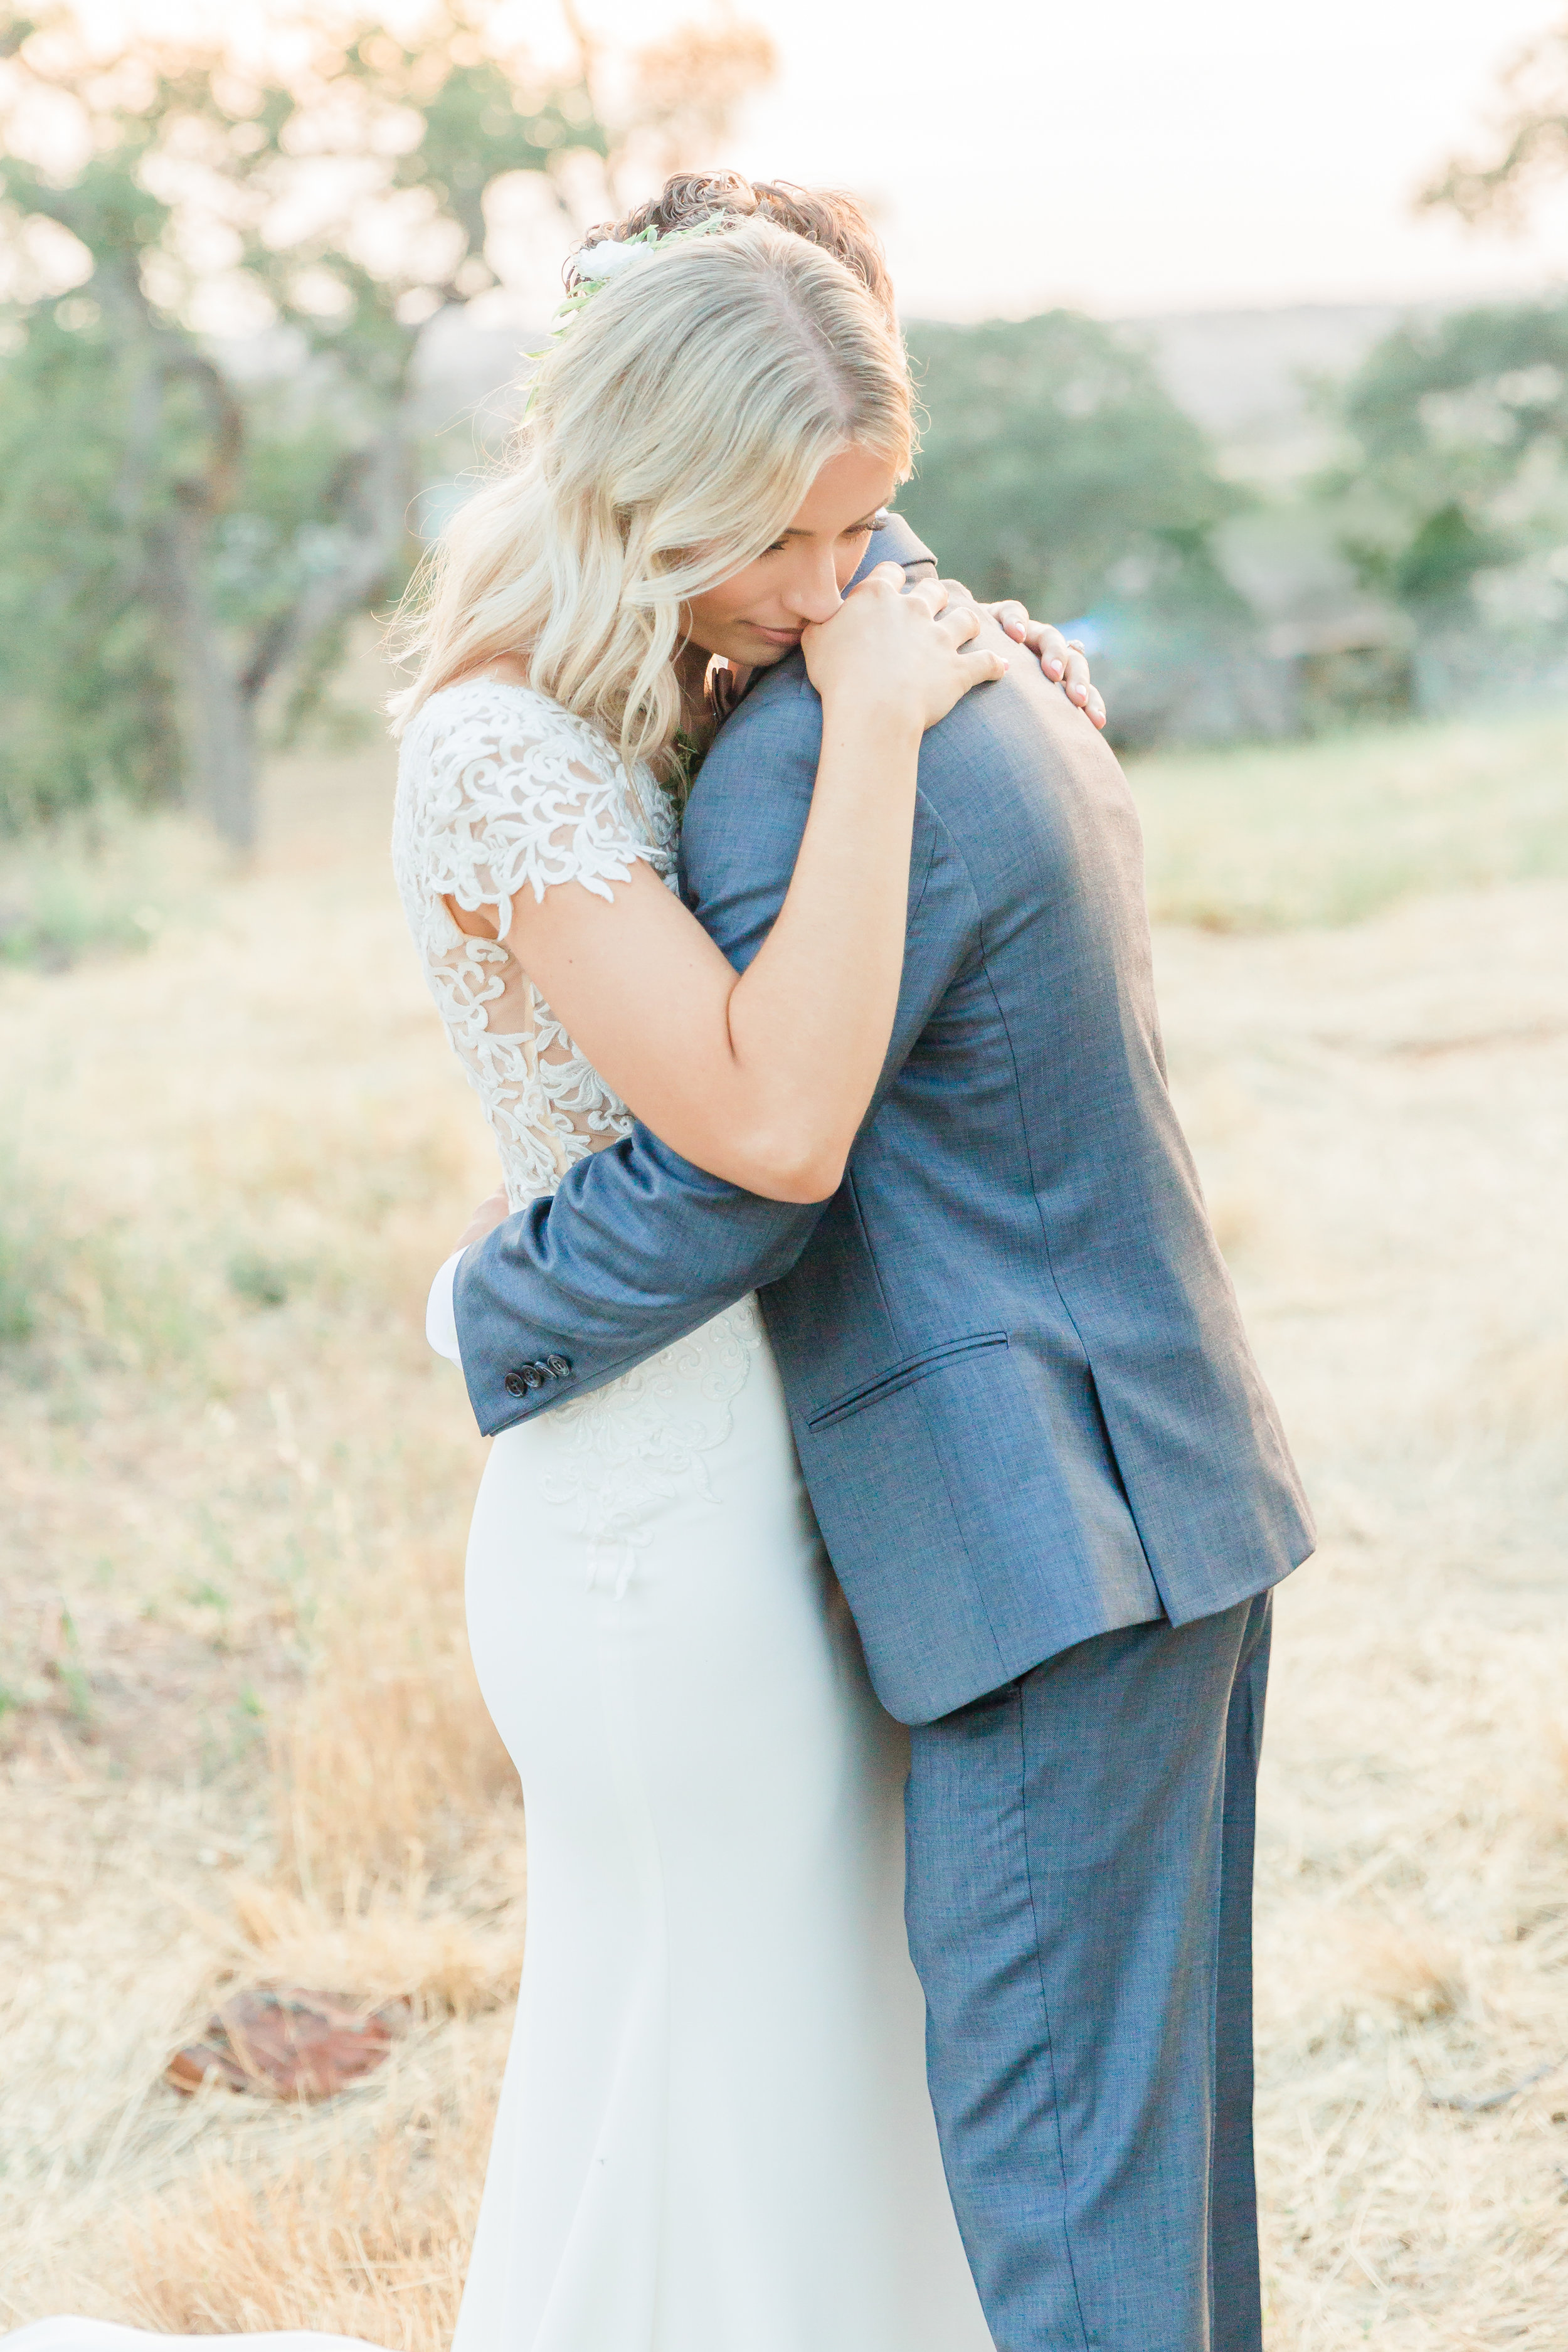 Kaitlynn and Colby - Married - Sneaks - Lauren Alisse Photography-114.jpg